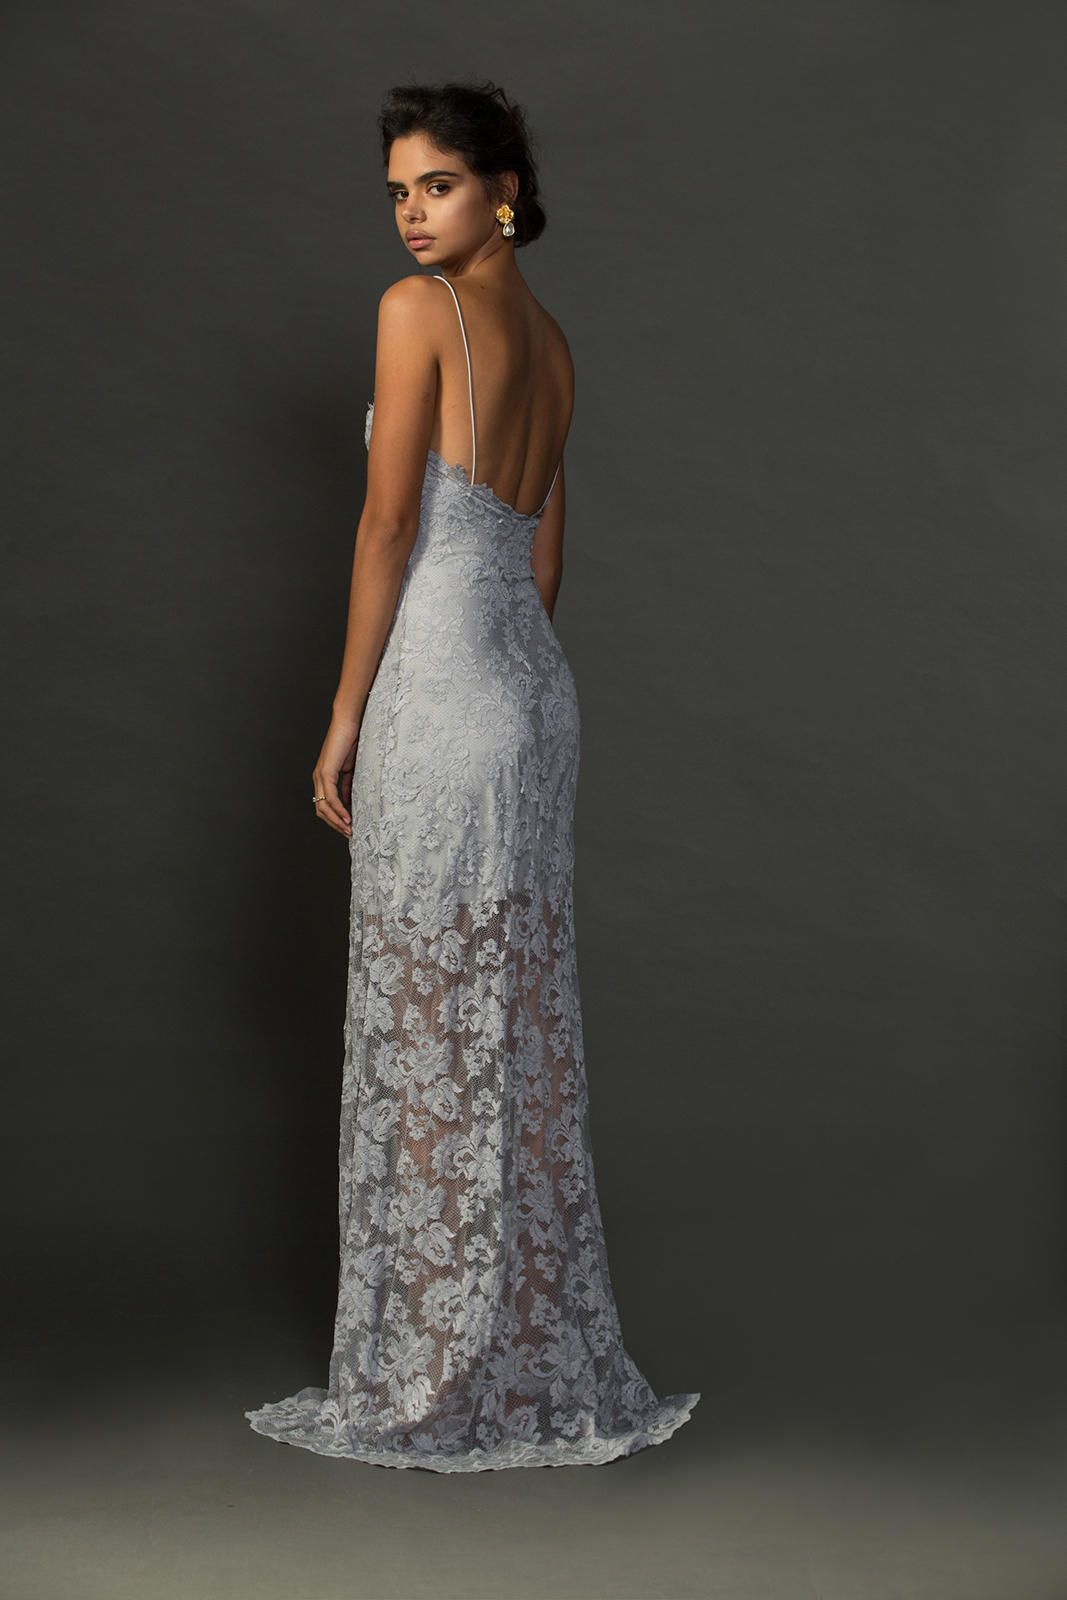 Effortlessly chic the olsen is for the bride unafraid to break out